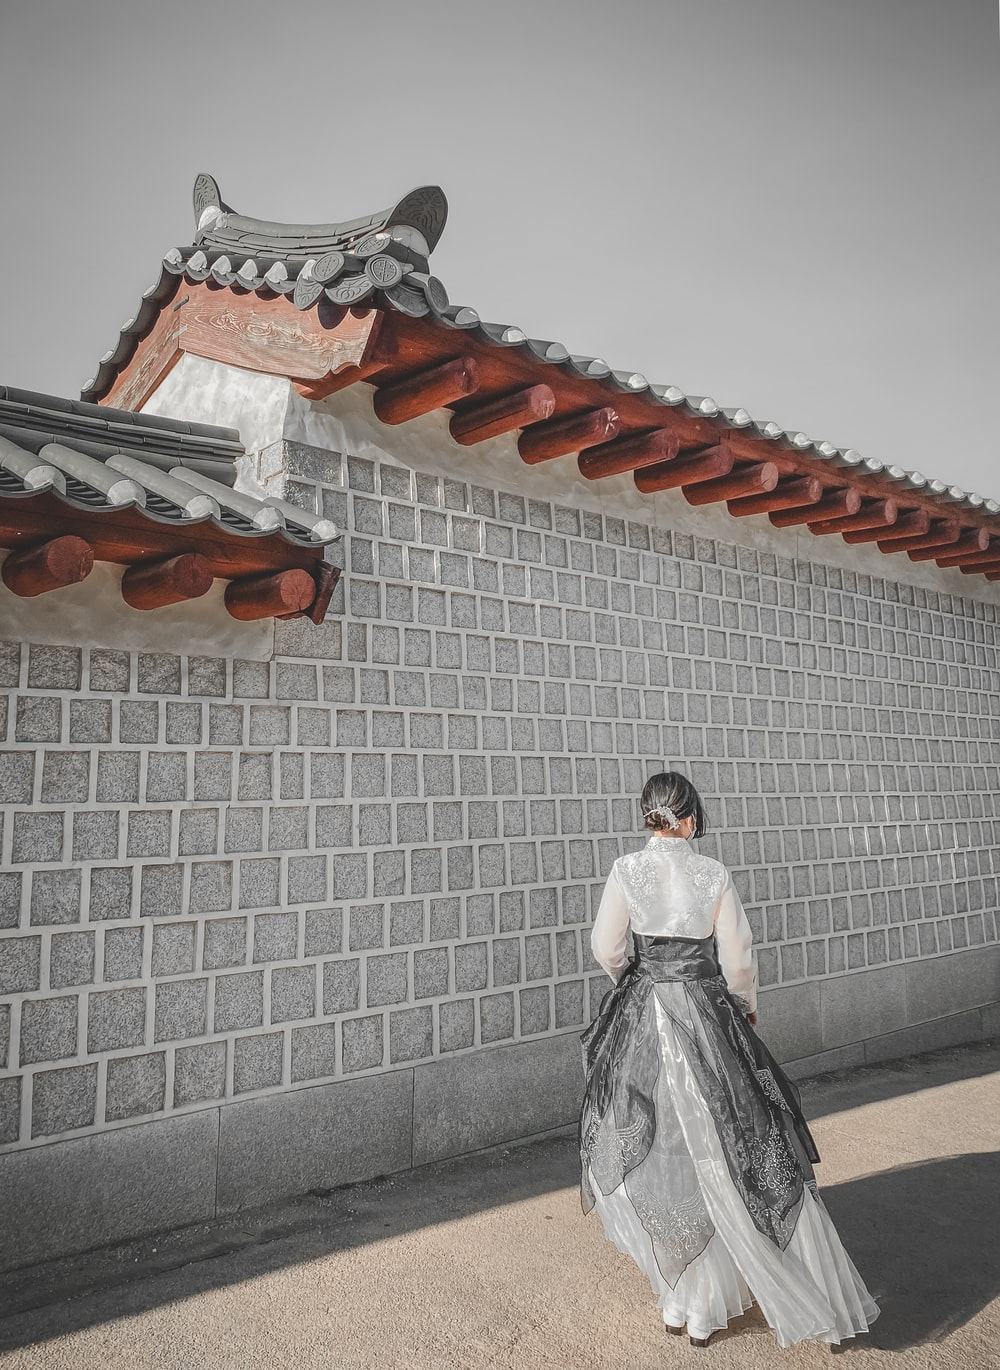 woman in white dress standing on stairs